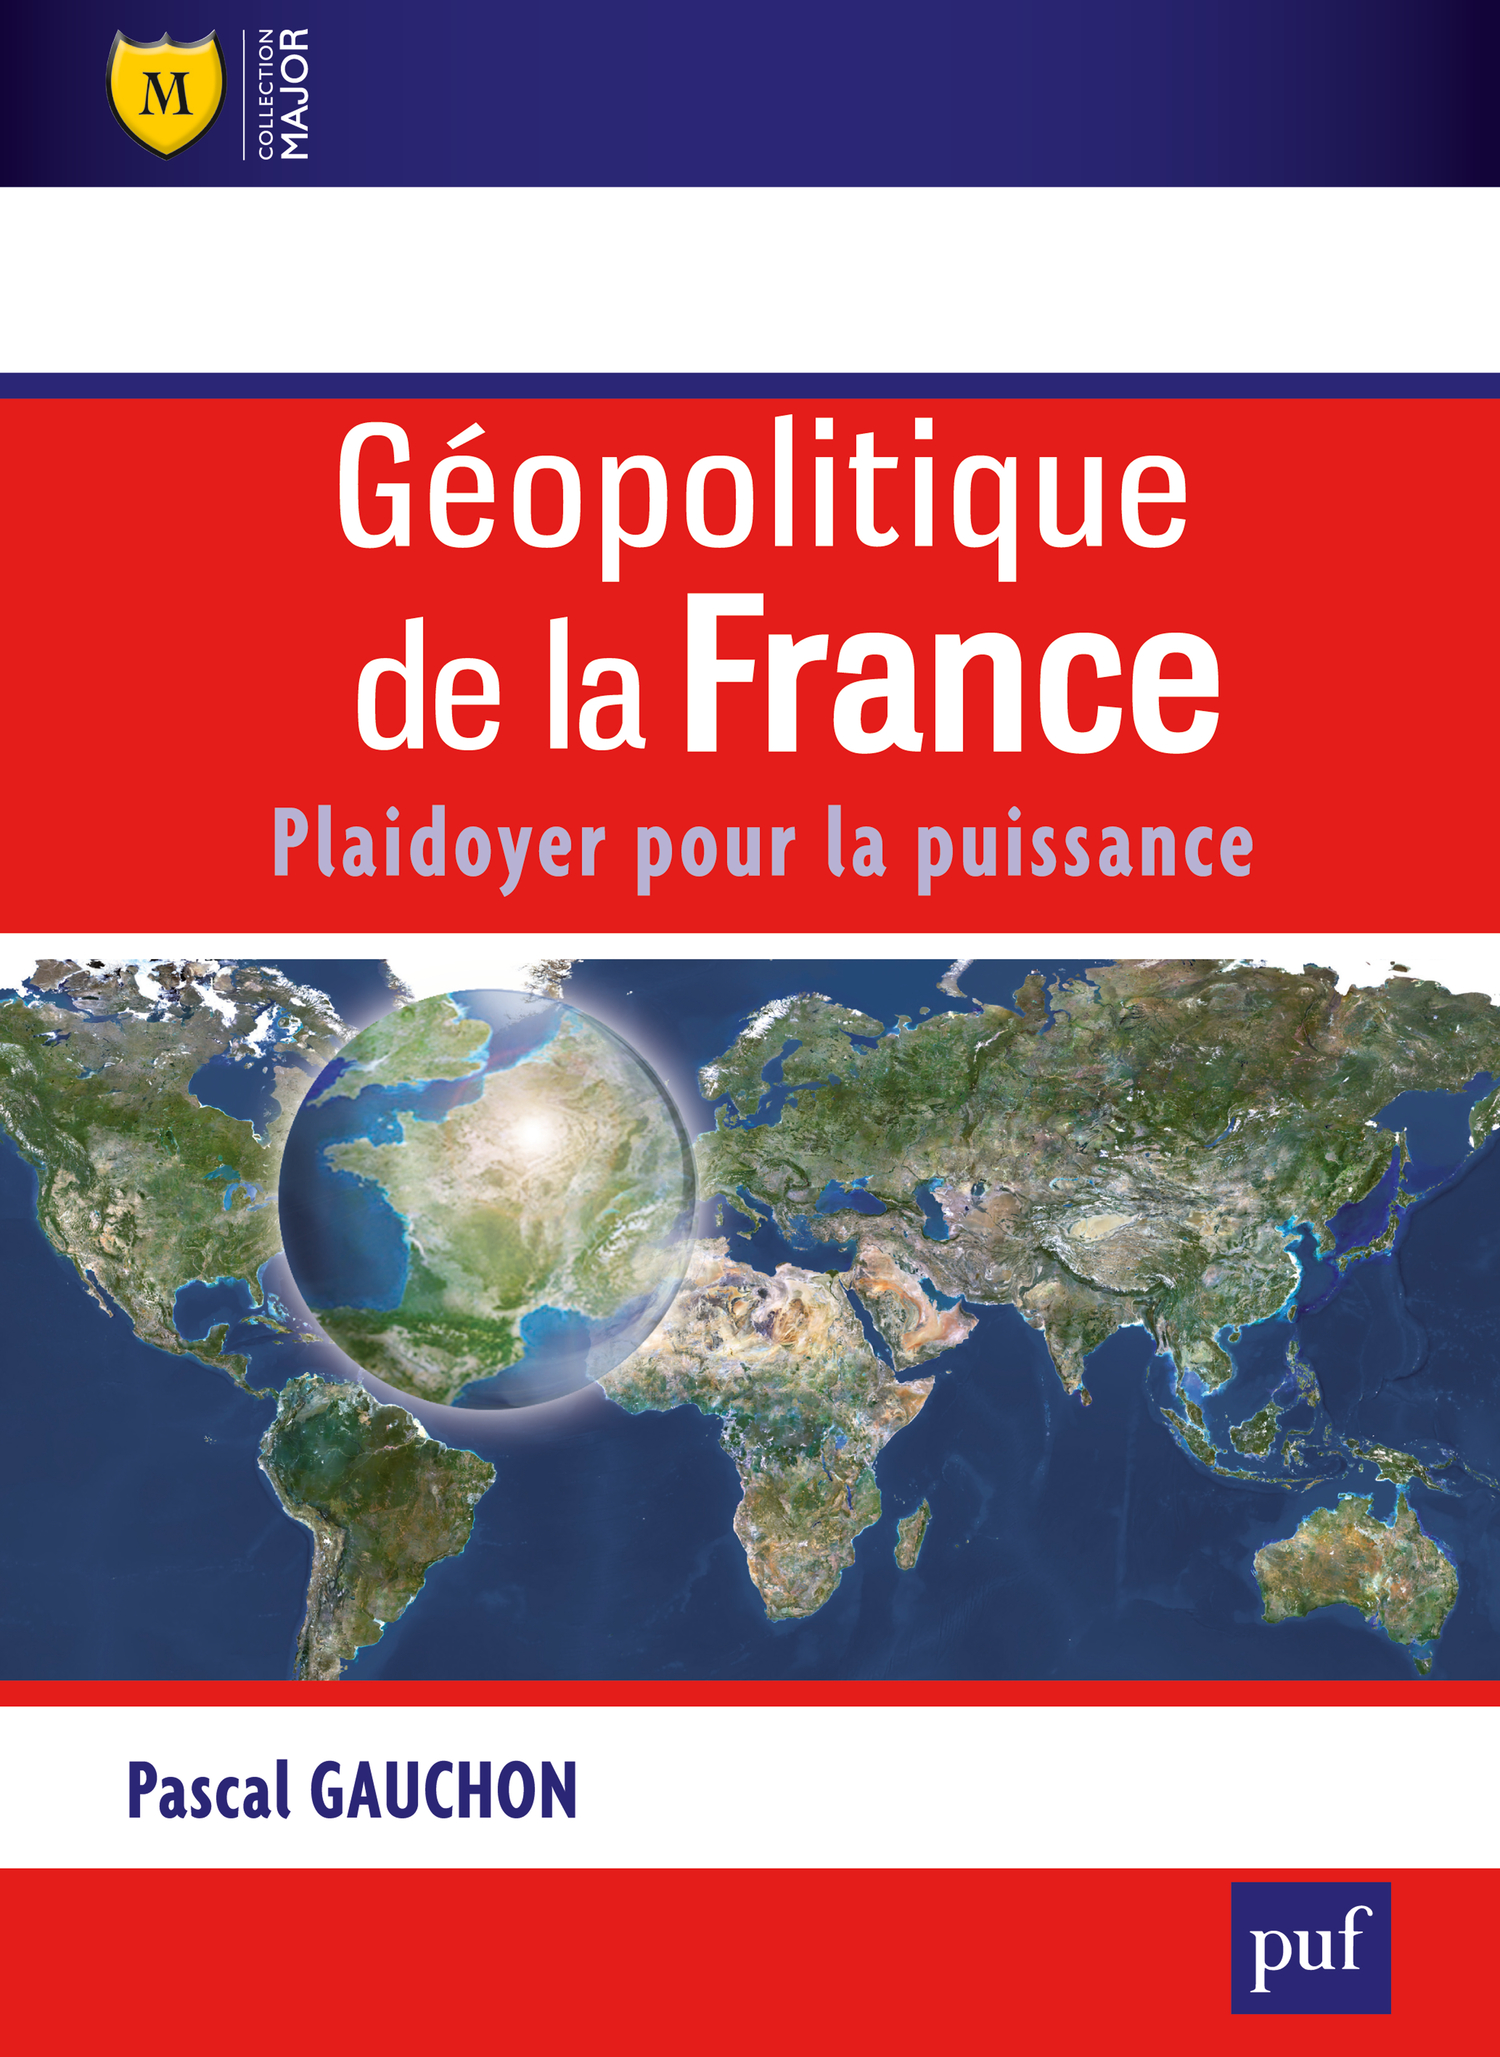 Géopolitique de la France De Pascal Gauchon - Presses Universitaires de France